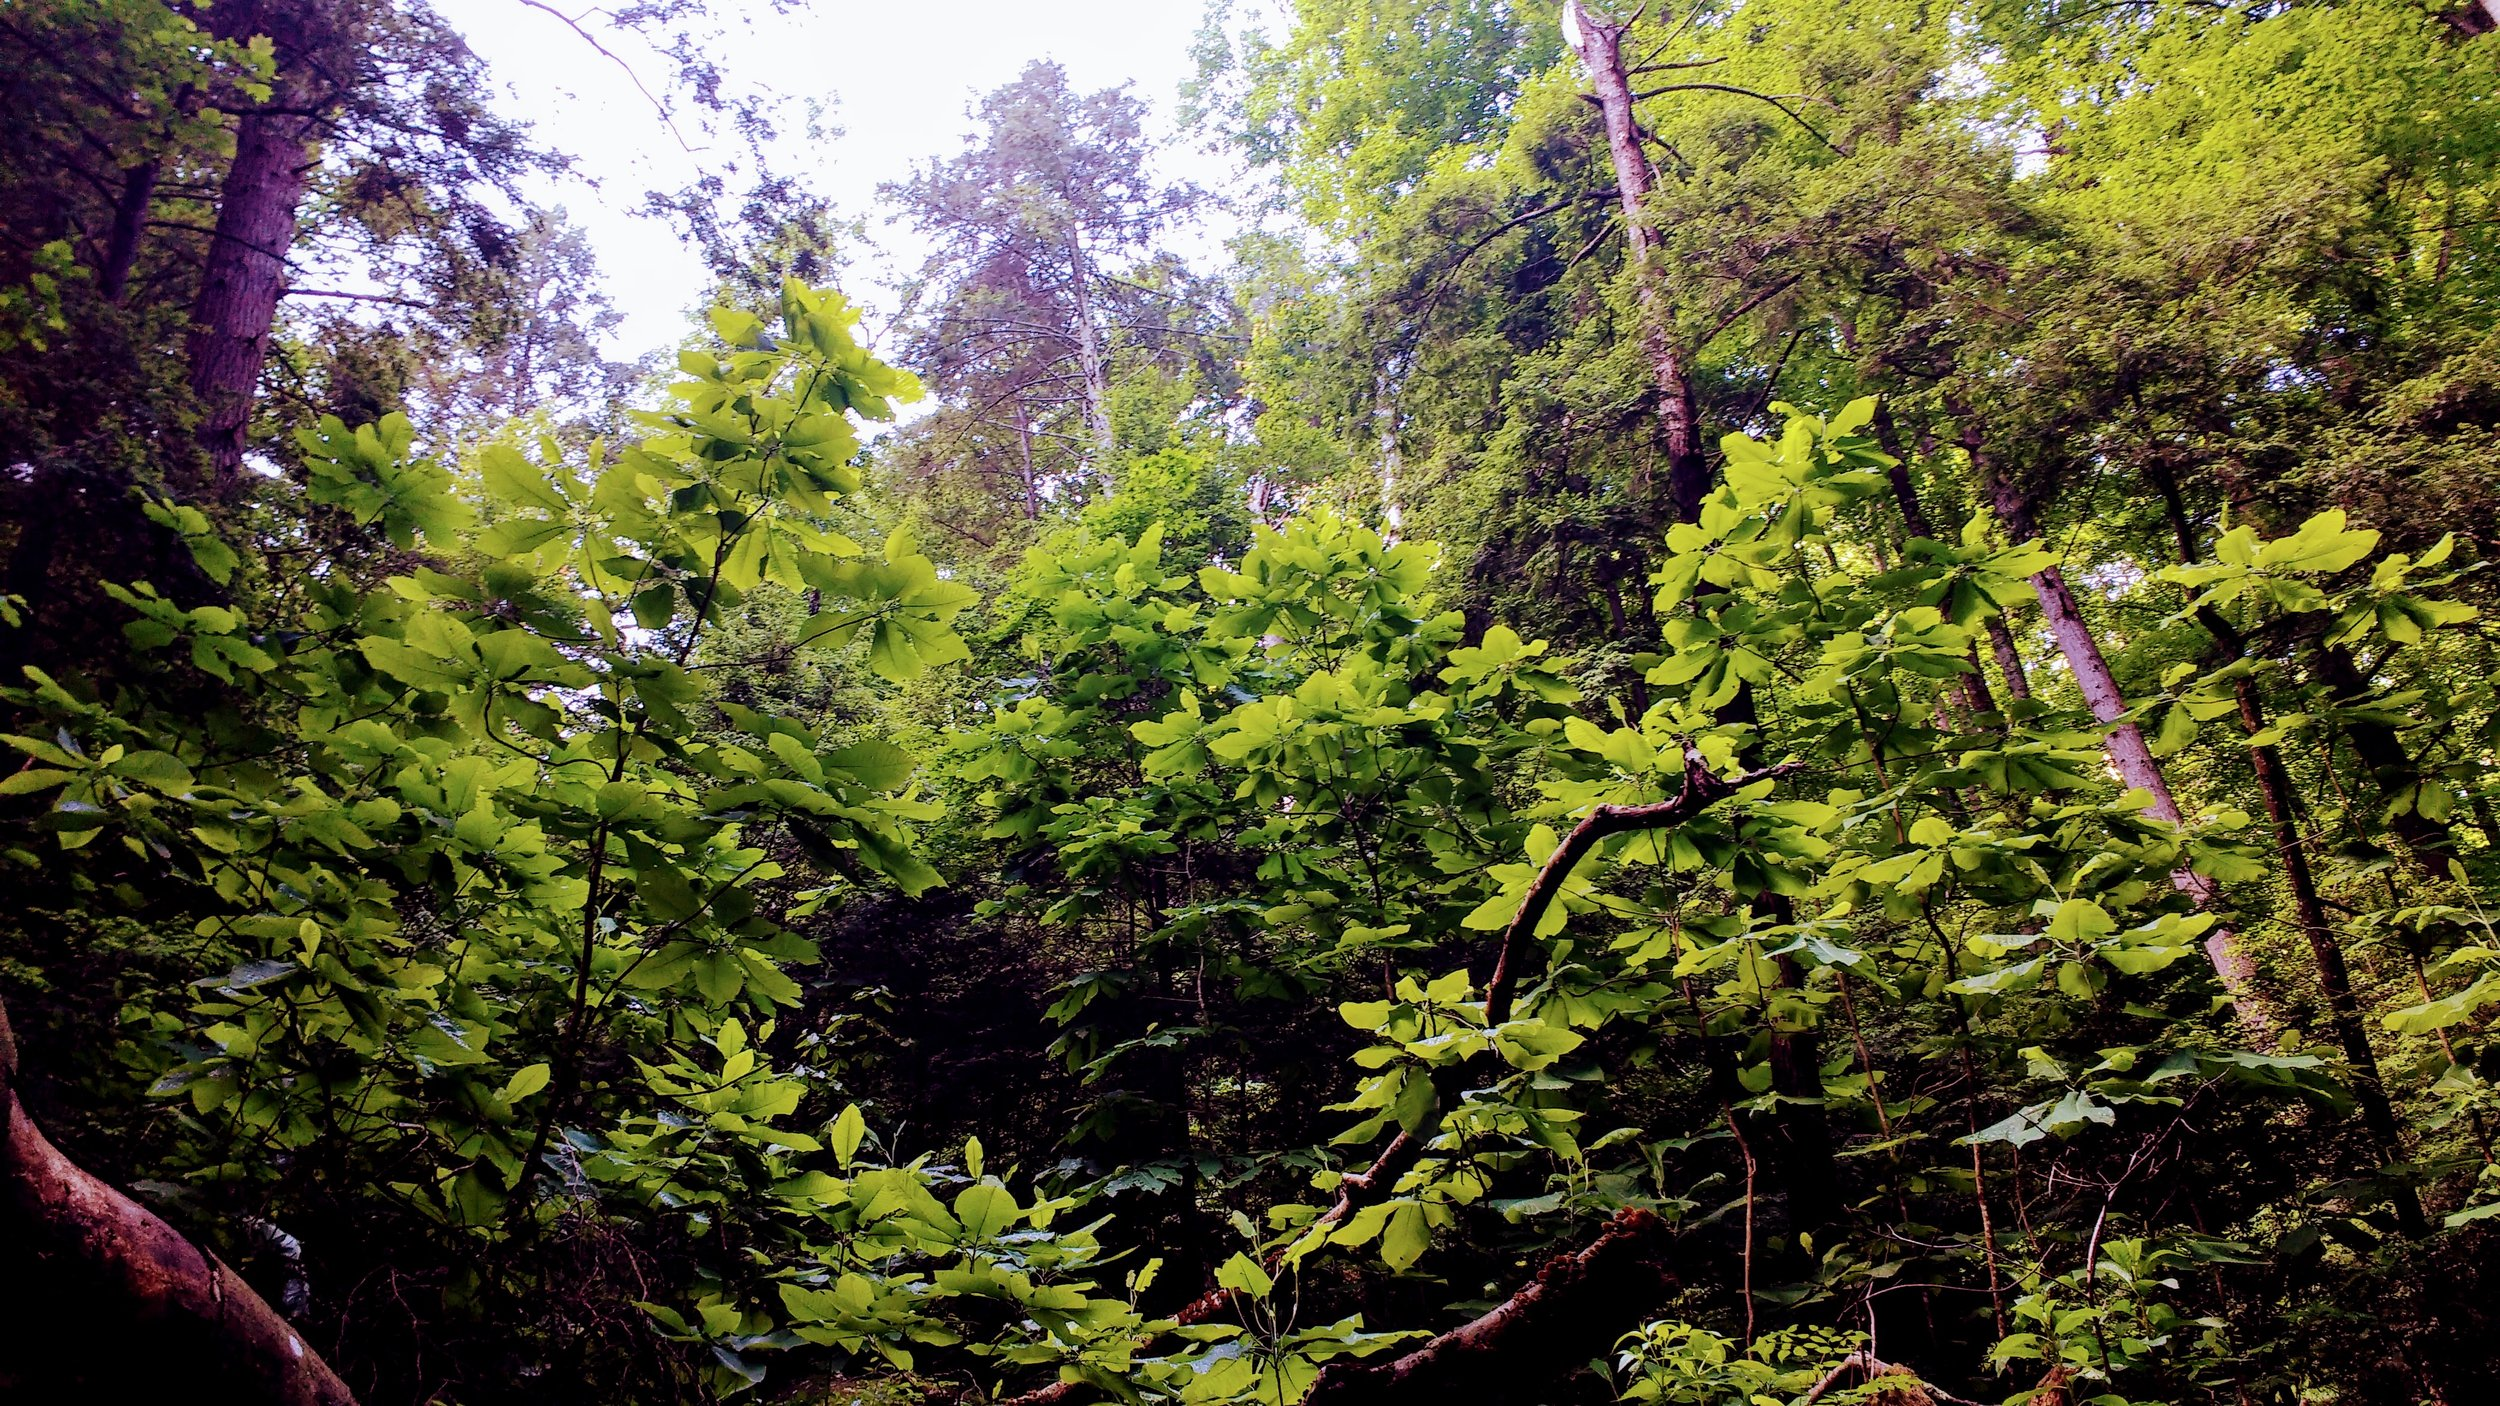 A break in the forest canopy on Sheltowee Trace